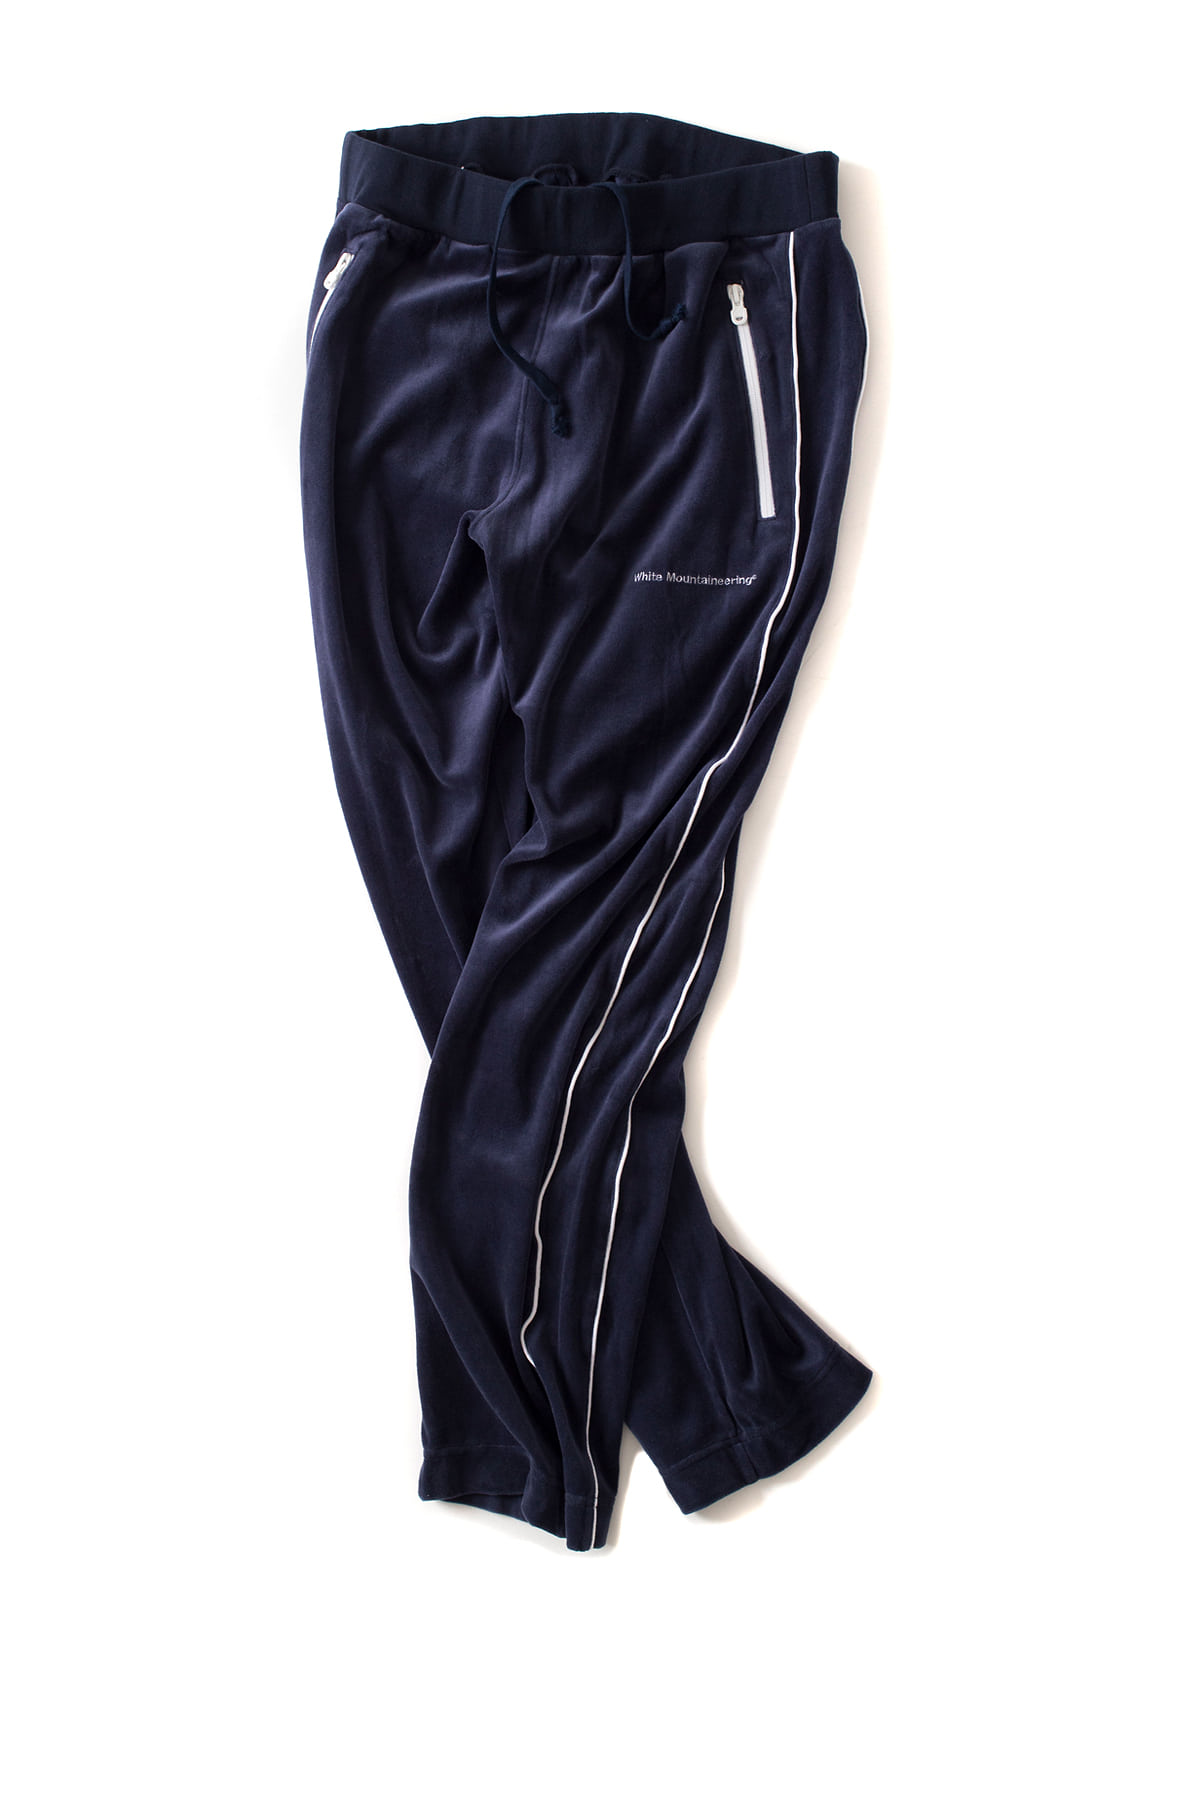 WHITE MOUNTAINEERING : Velour Track Pants (Navy)